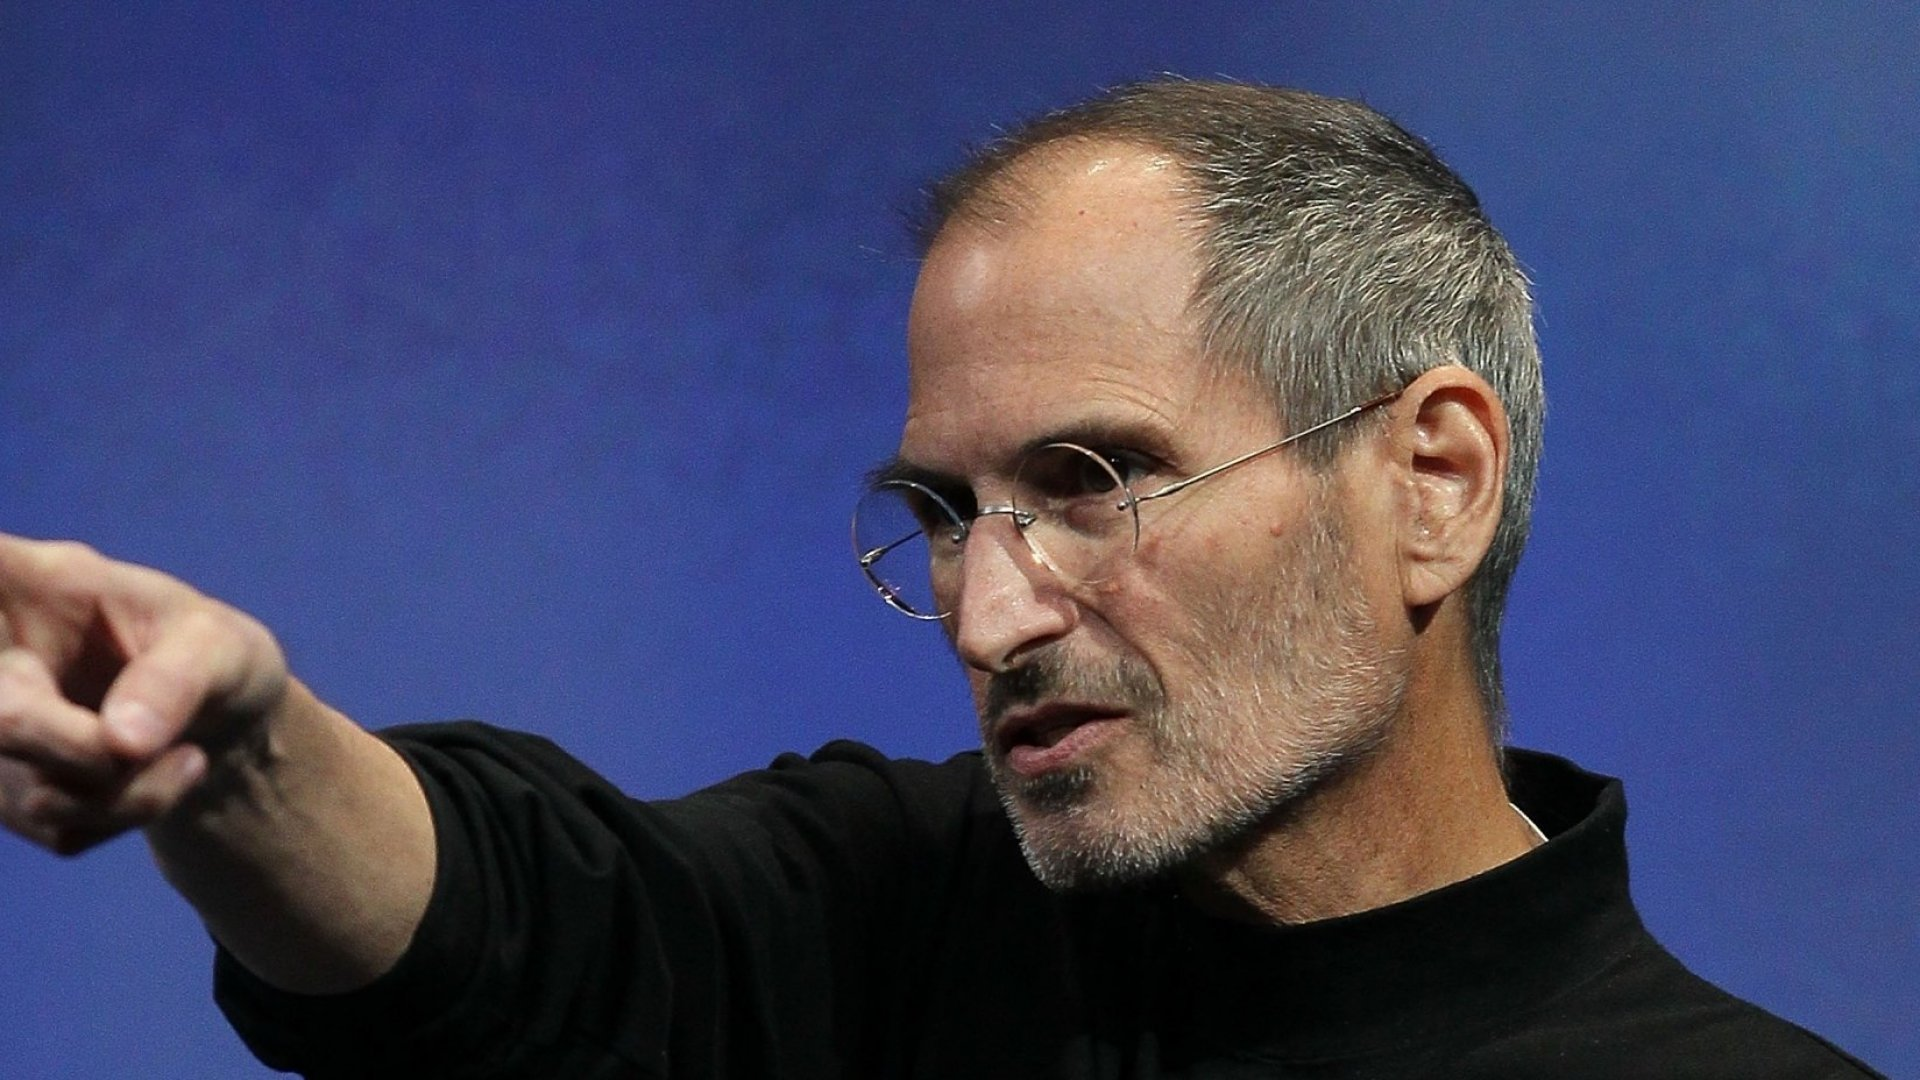 11 Best Lines Steve Jobs Used in an Interview